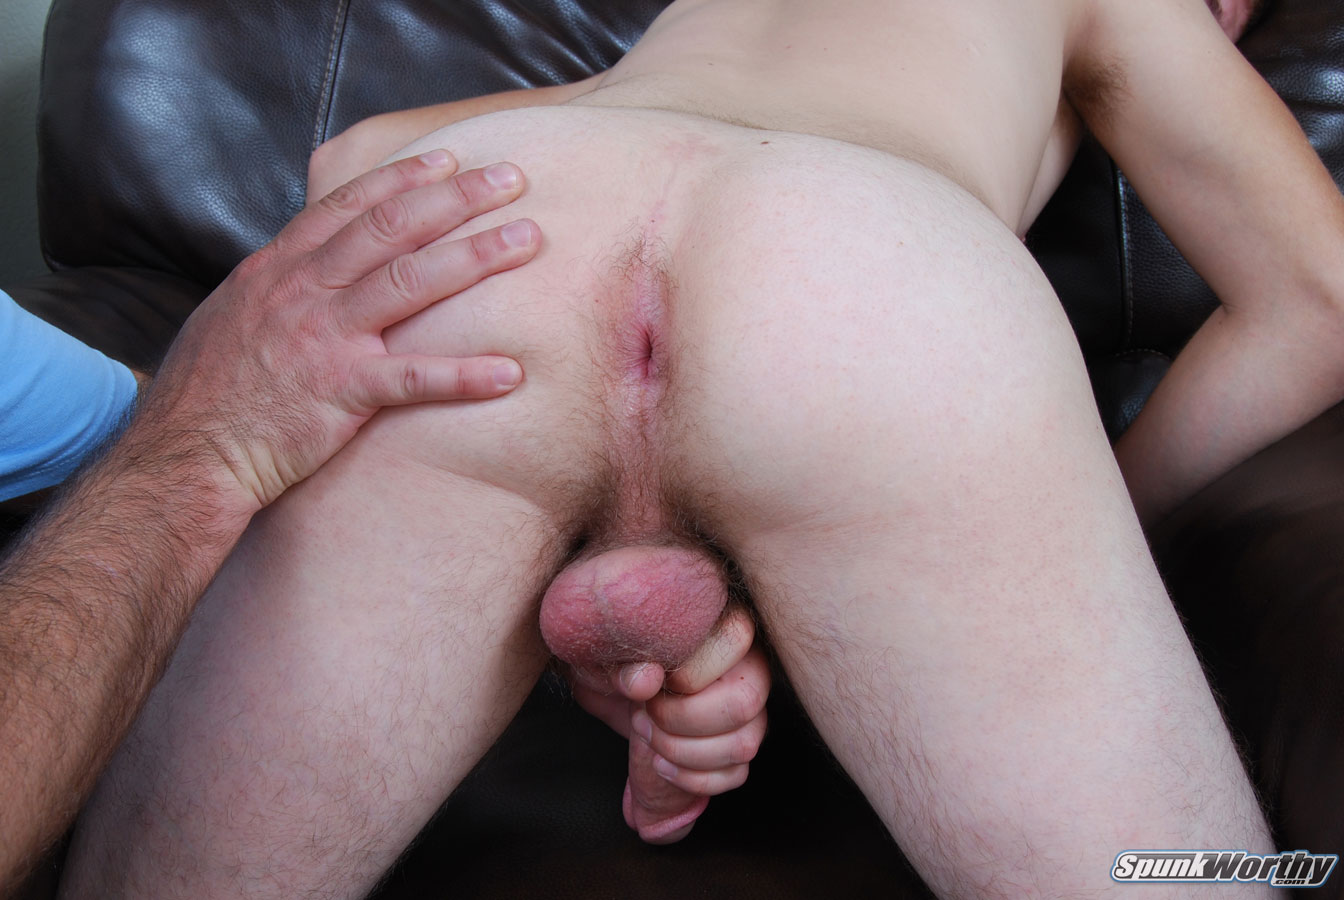 SpunkWorthy-Galen-US-Marine-Getting-His-Cock-Sucked-Amateur-Gay-Porn-08 Straight US Marine Gets His Cock Sucked And Ass Fingered By A Guy